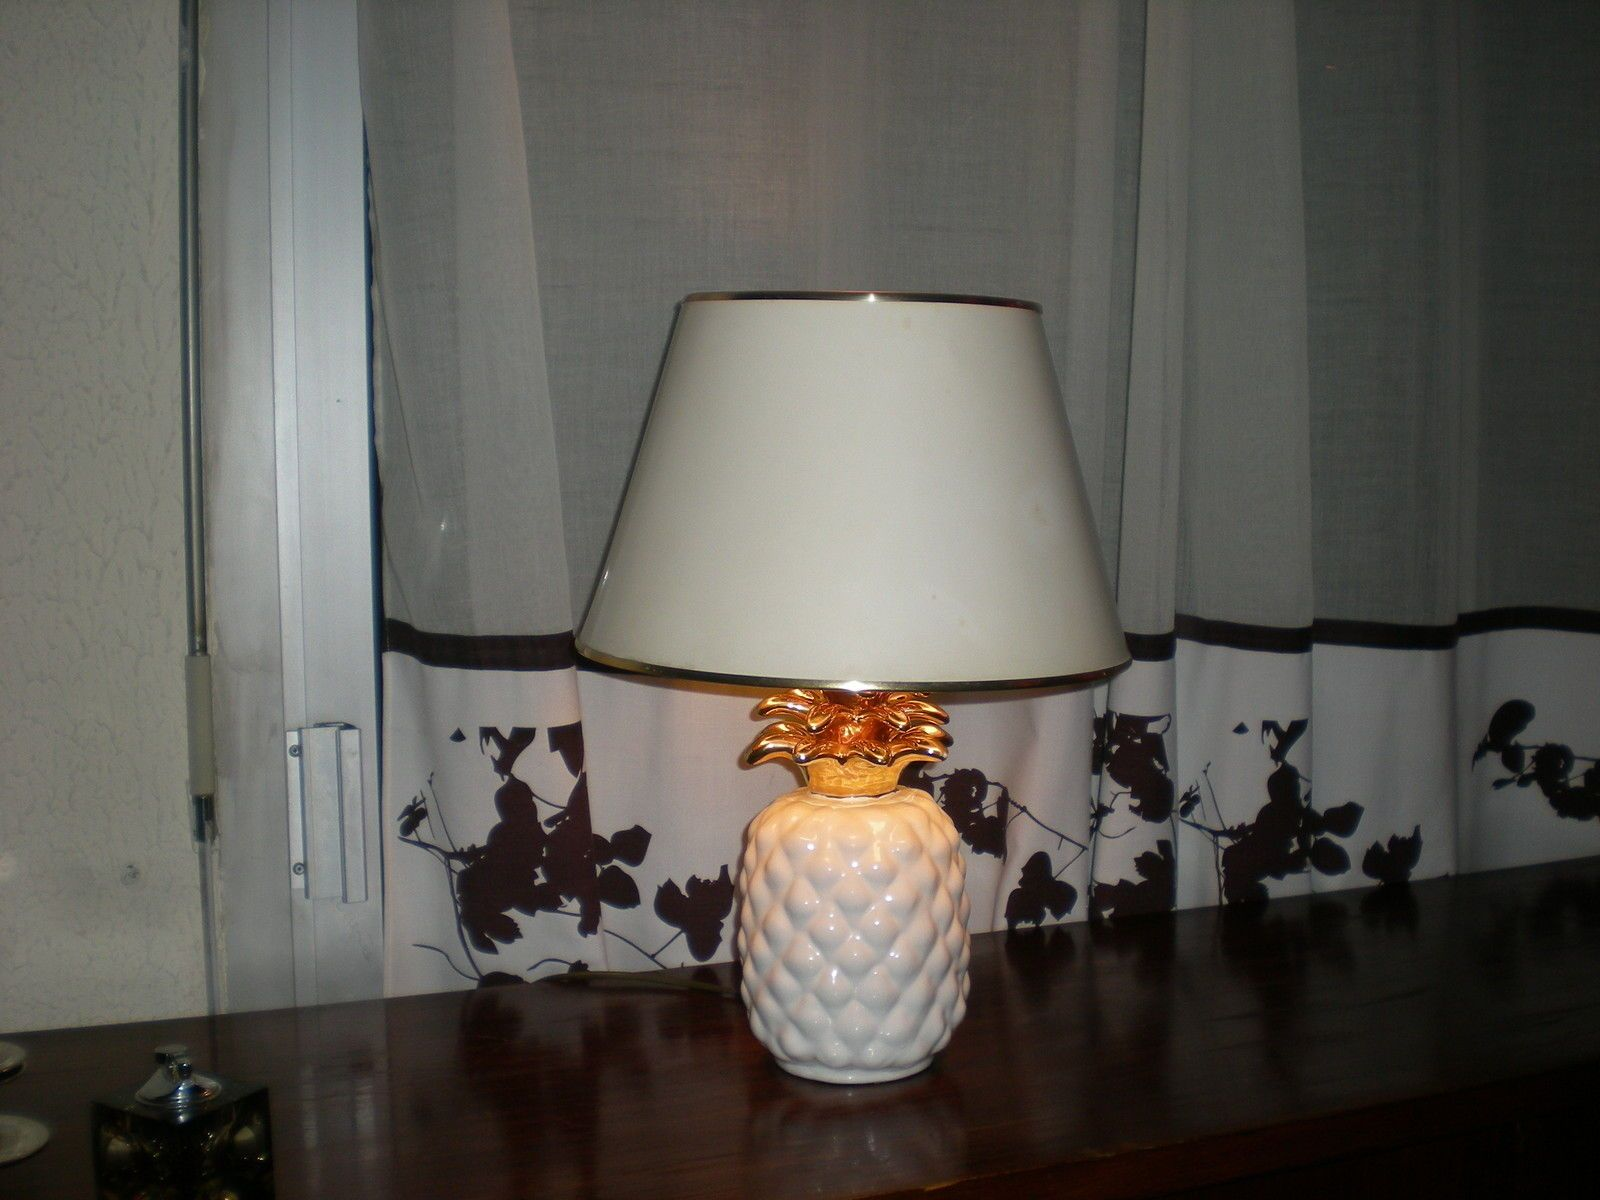 lampe ananas c ramique blanche et dor e vintage dlg maison charles 60 70 knoll ebay for the. Black Bedroom Furniture Sets. Home Design Ideas